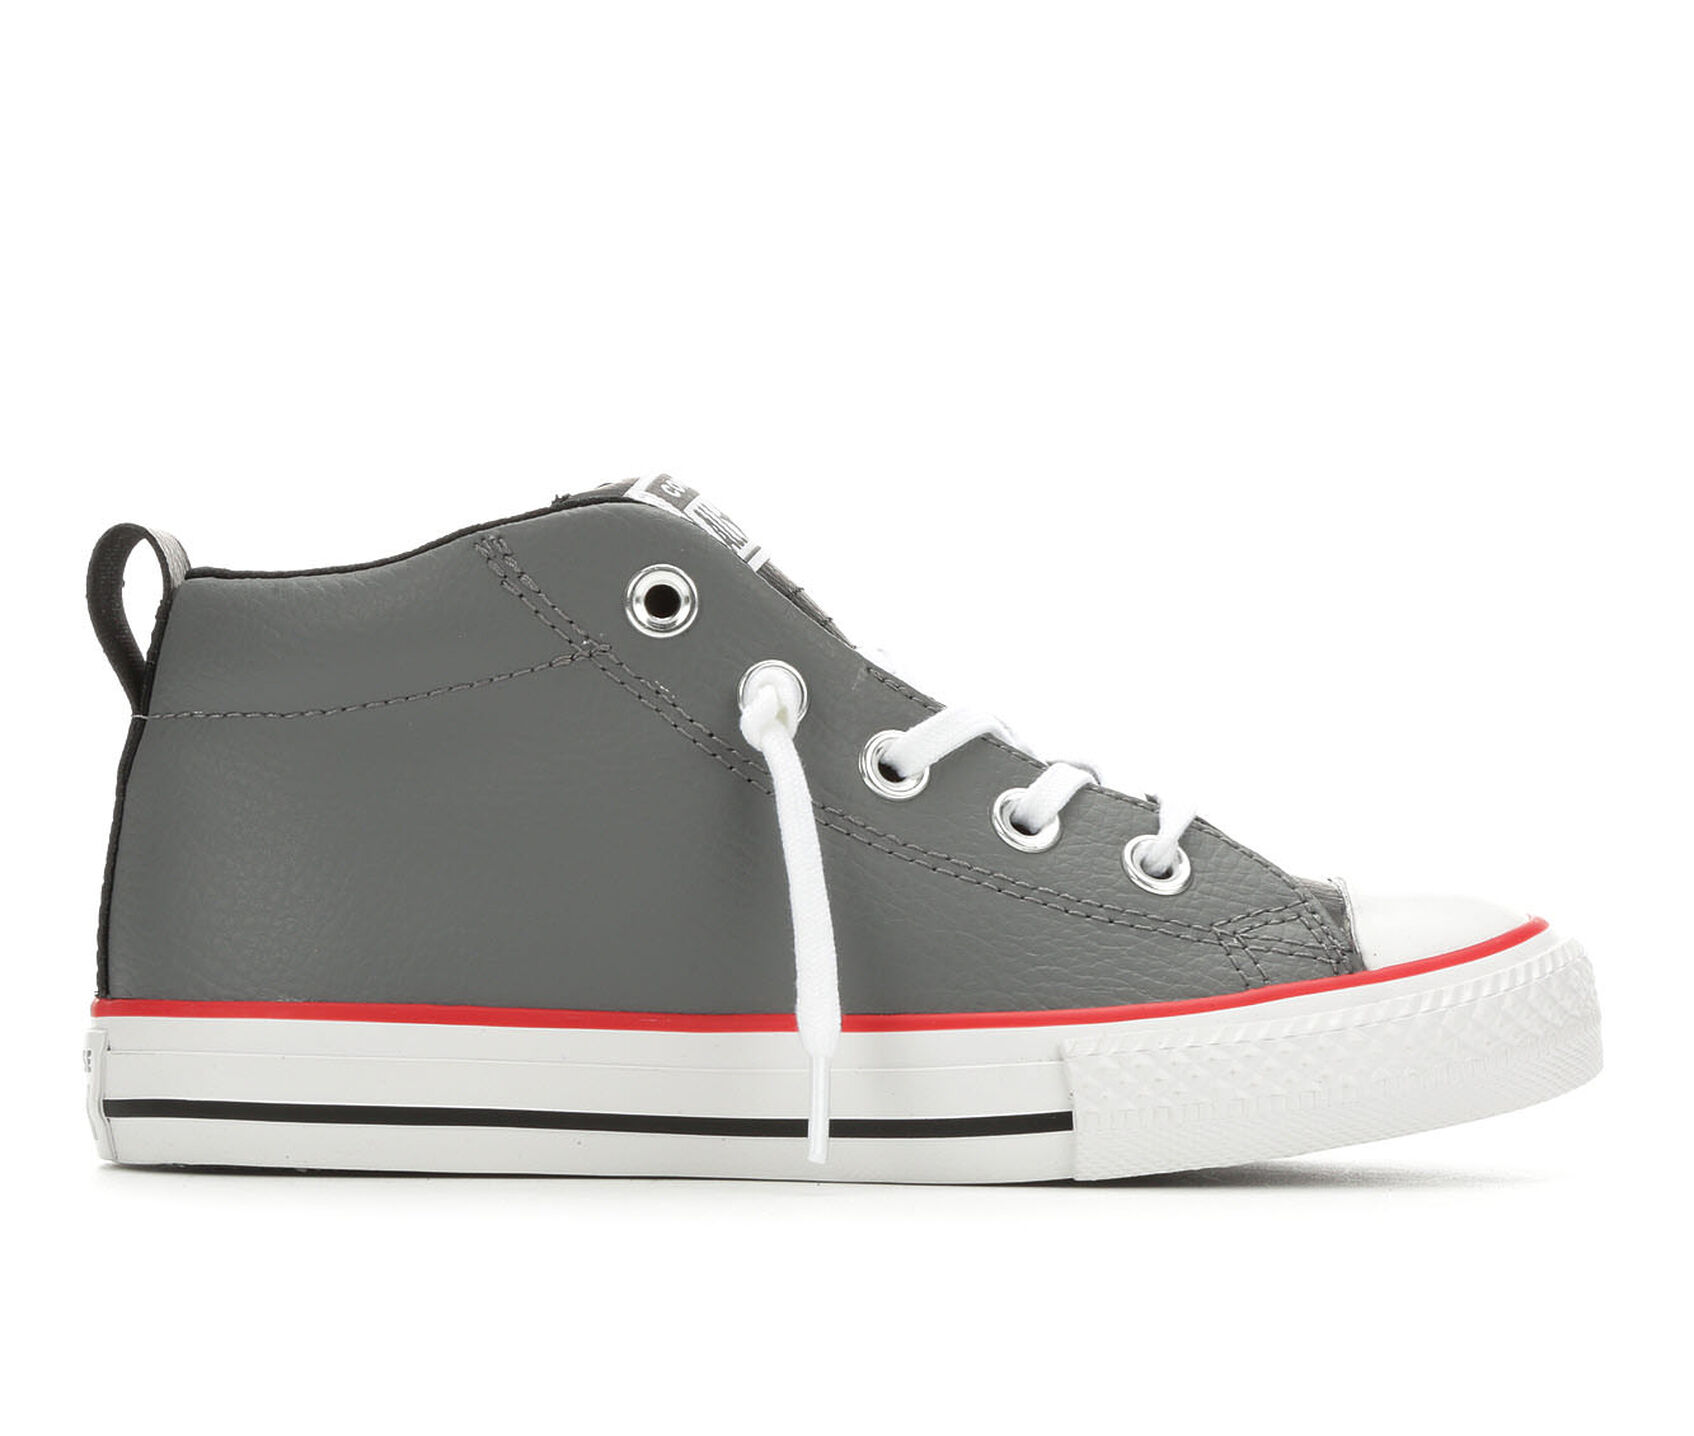 621e37c93f4 ... Converse Little Kid  amp  Big Kid CTAS Street Mid Leather Sneakers.  Carousel Controls Previous